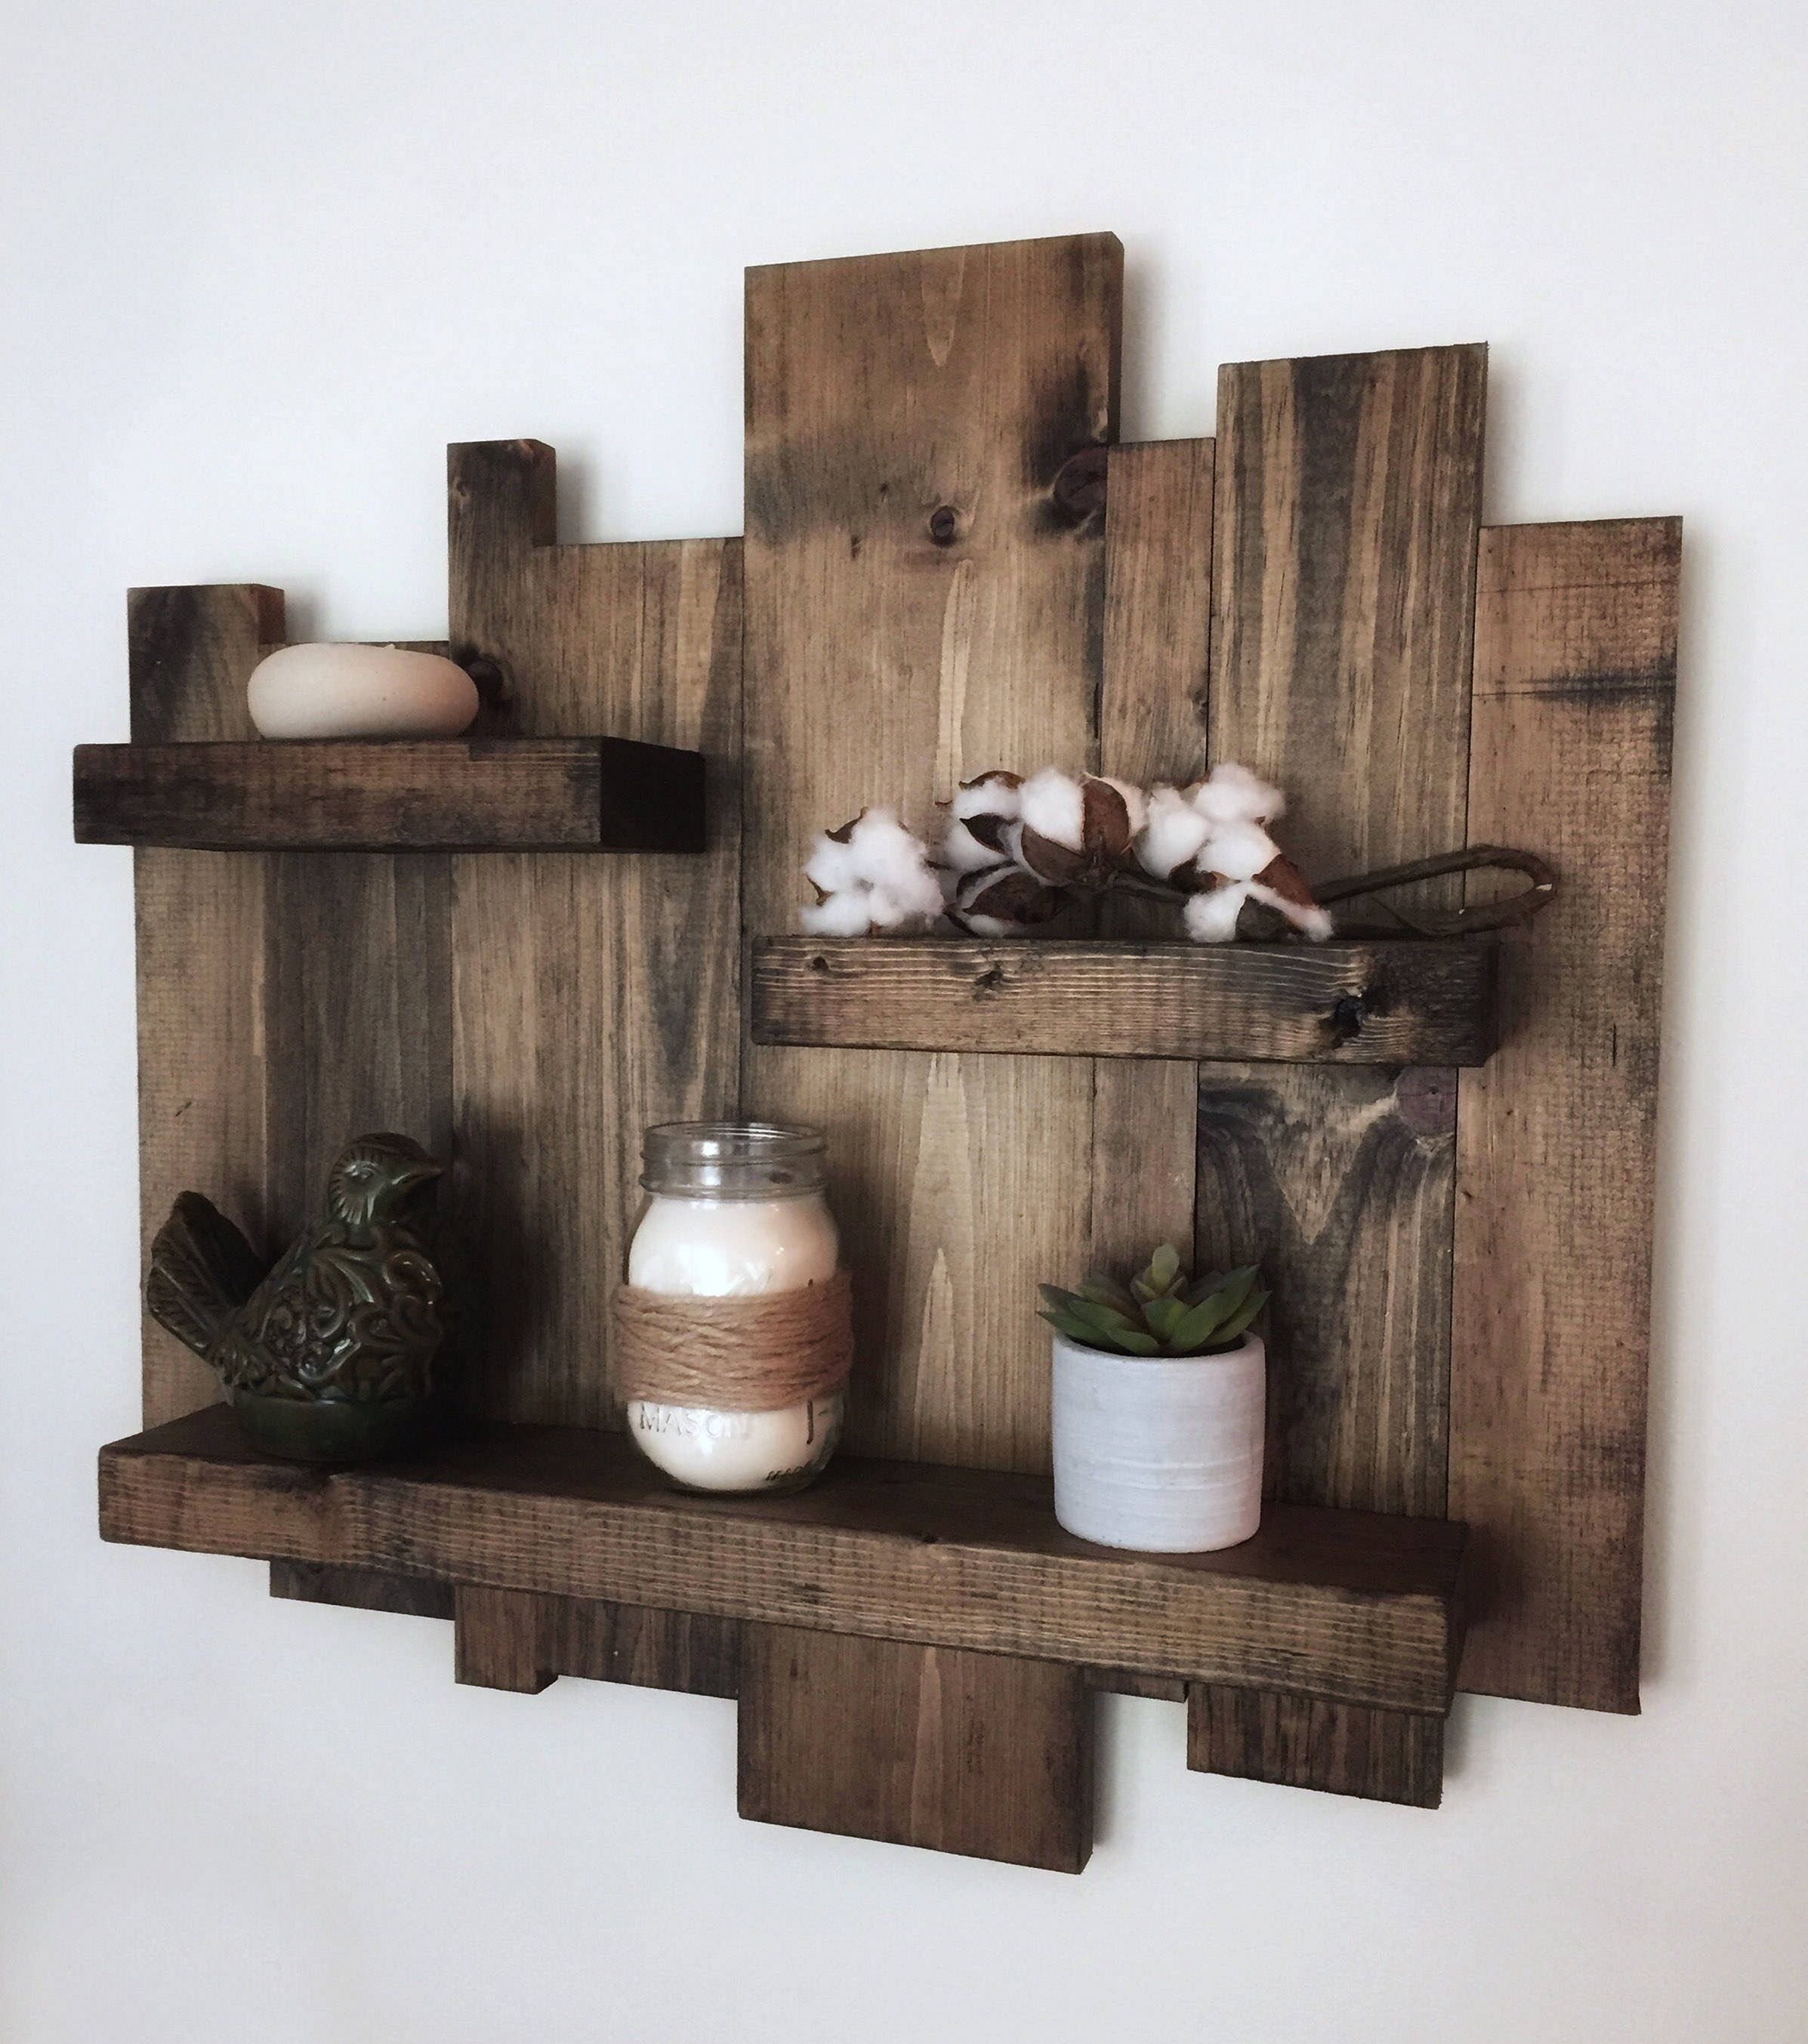 12 Most Creative Wooden Wall Hanging Ideas For Your Living Room Freshouz Com Rustic Wall Shelves Wood Wall Shelf Wooden Pallet Projects